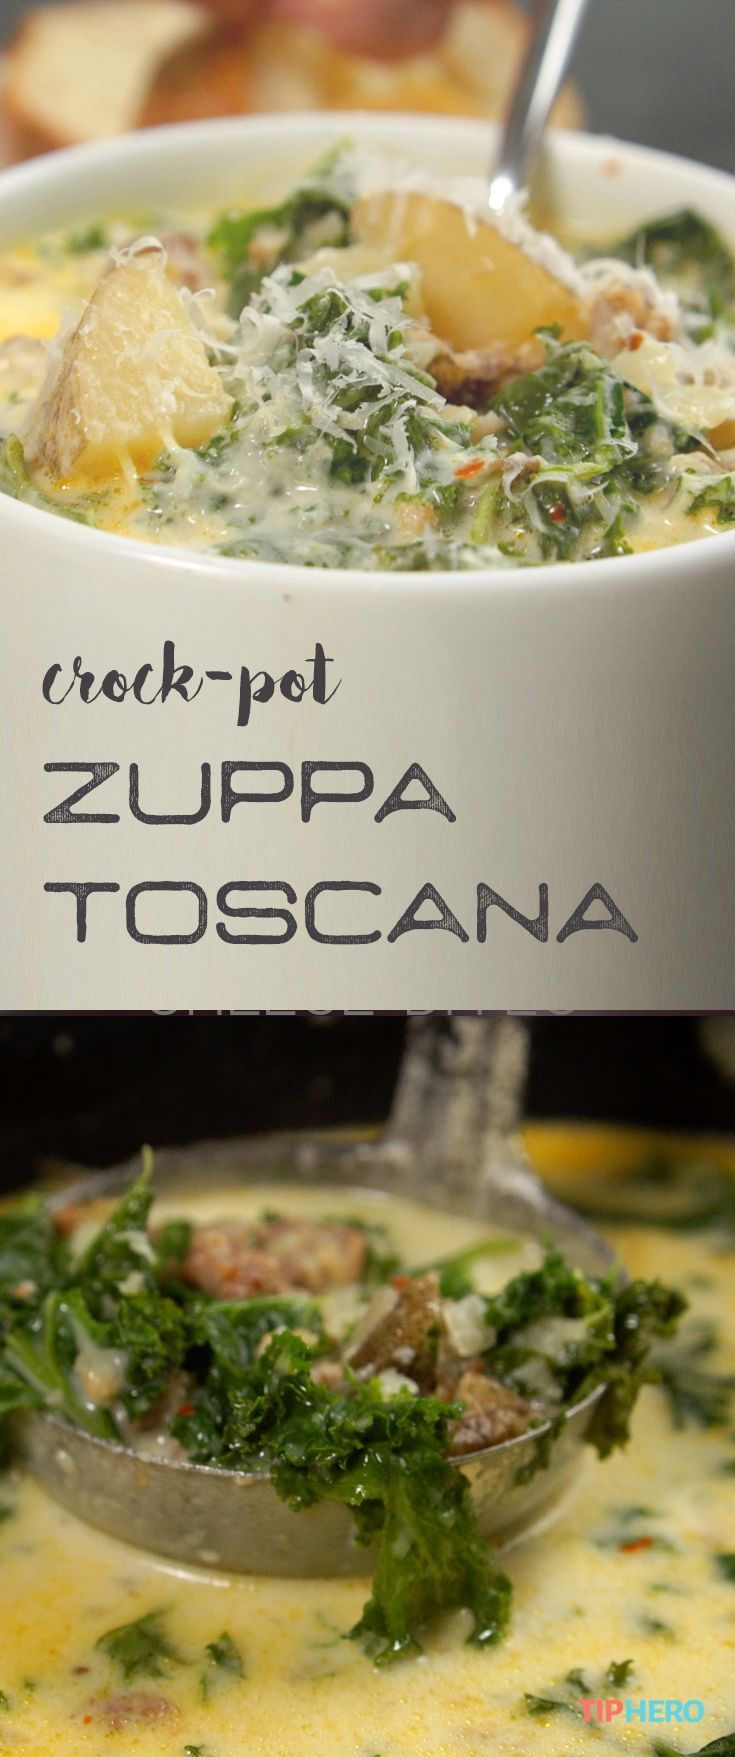 Crock Pot Zuppa Toscana Recipe Slow Cooker Recipes Slow Cooker Soup Toscana Recipe